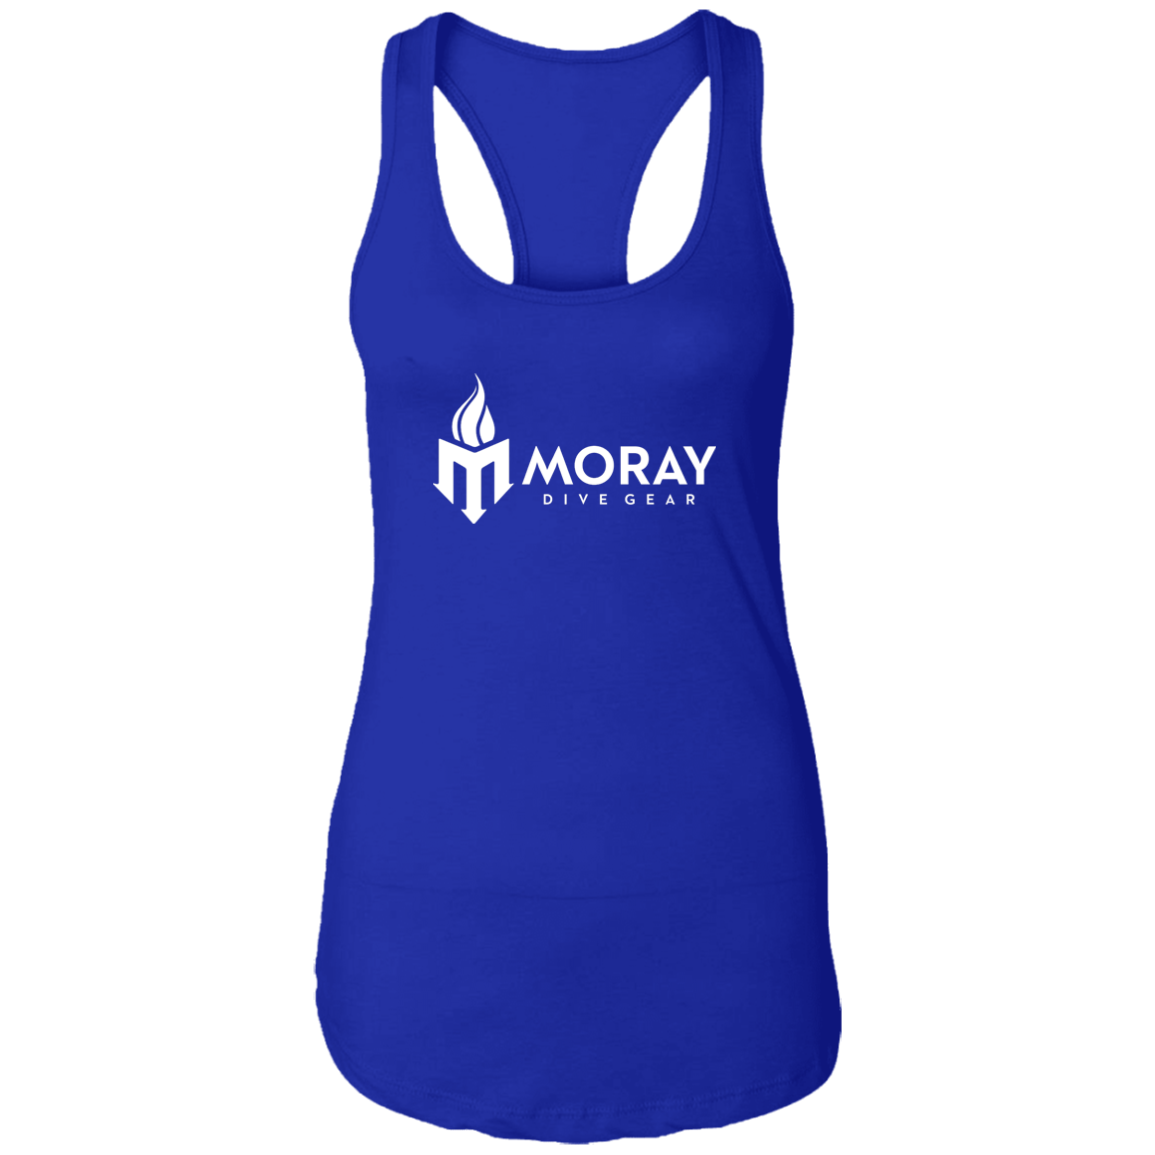 NL1533 Ladies Ideal Racerback Tank - moraydivelights